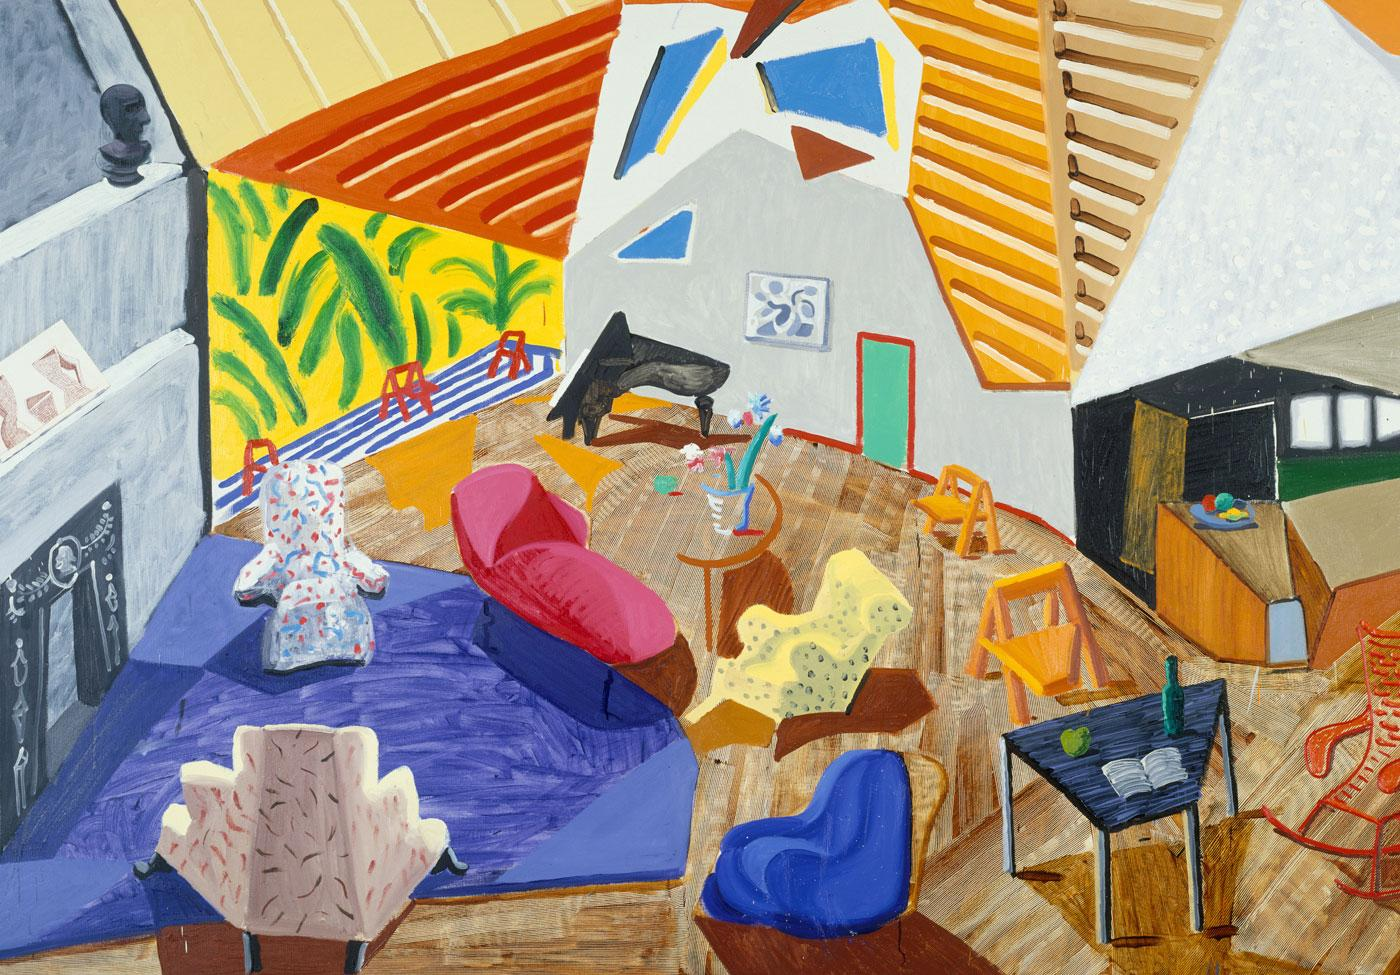 Large Interior, Los Angeles by David Hockney, 1988.